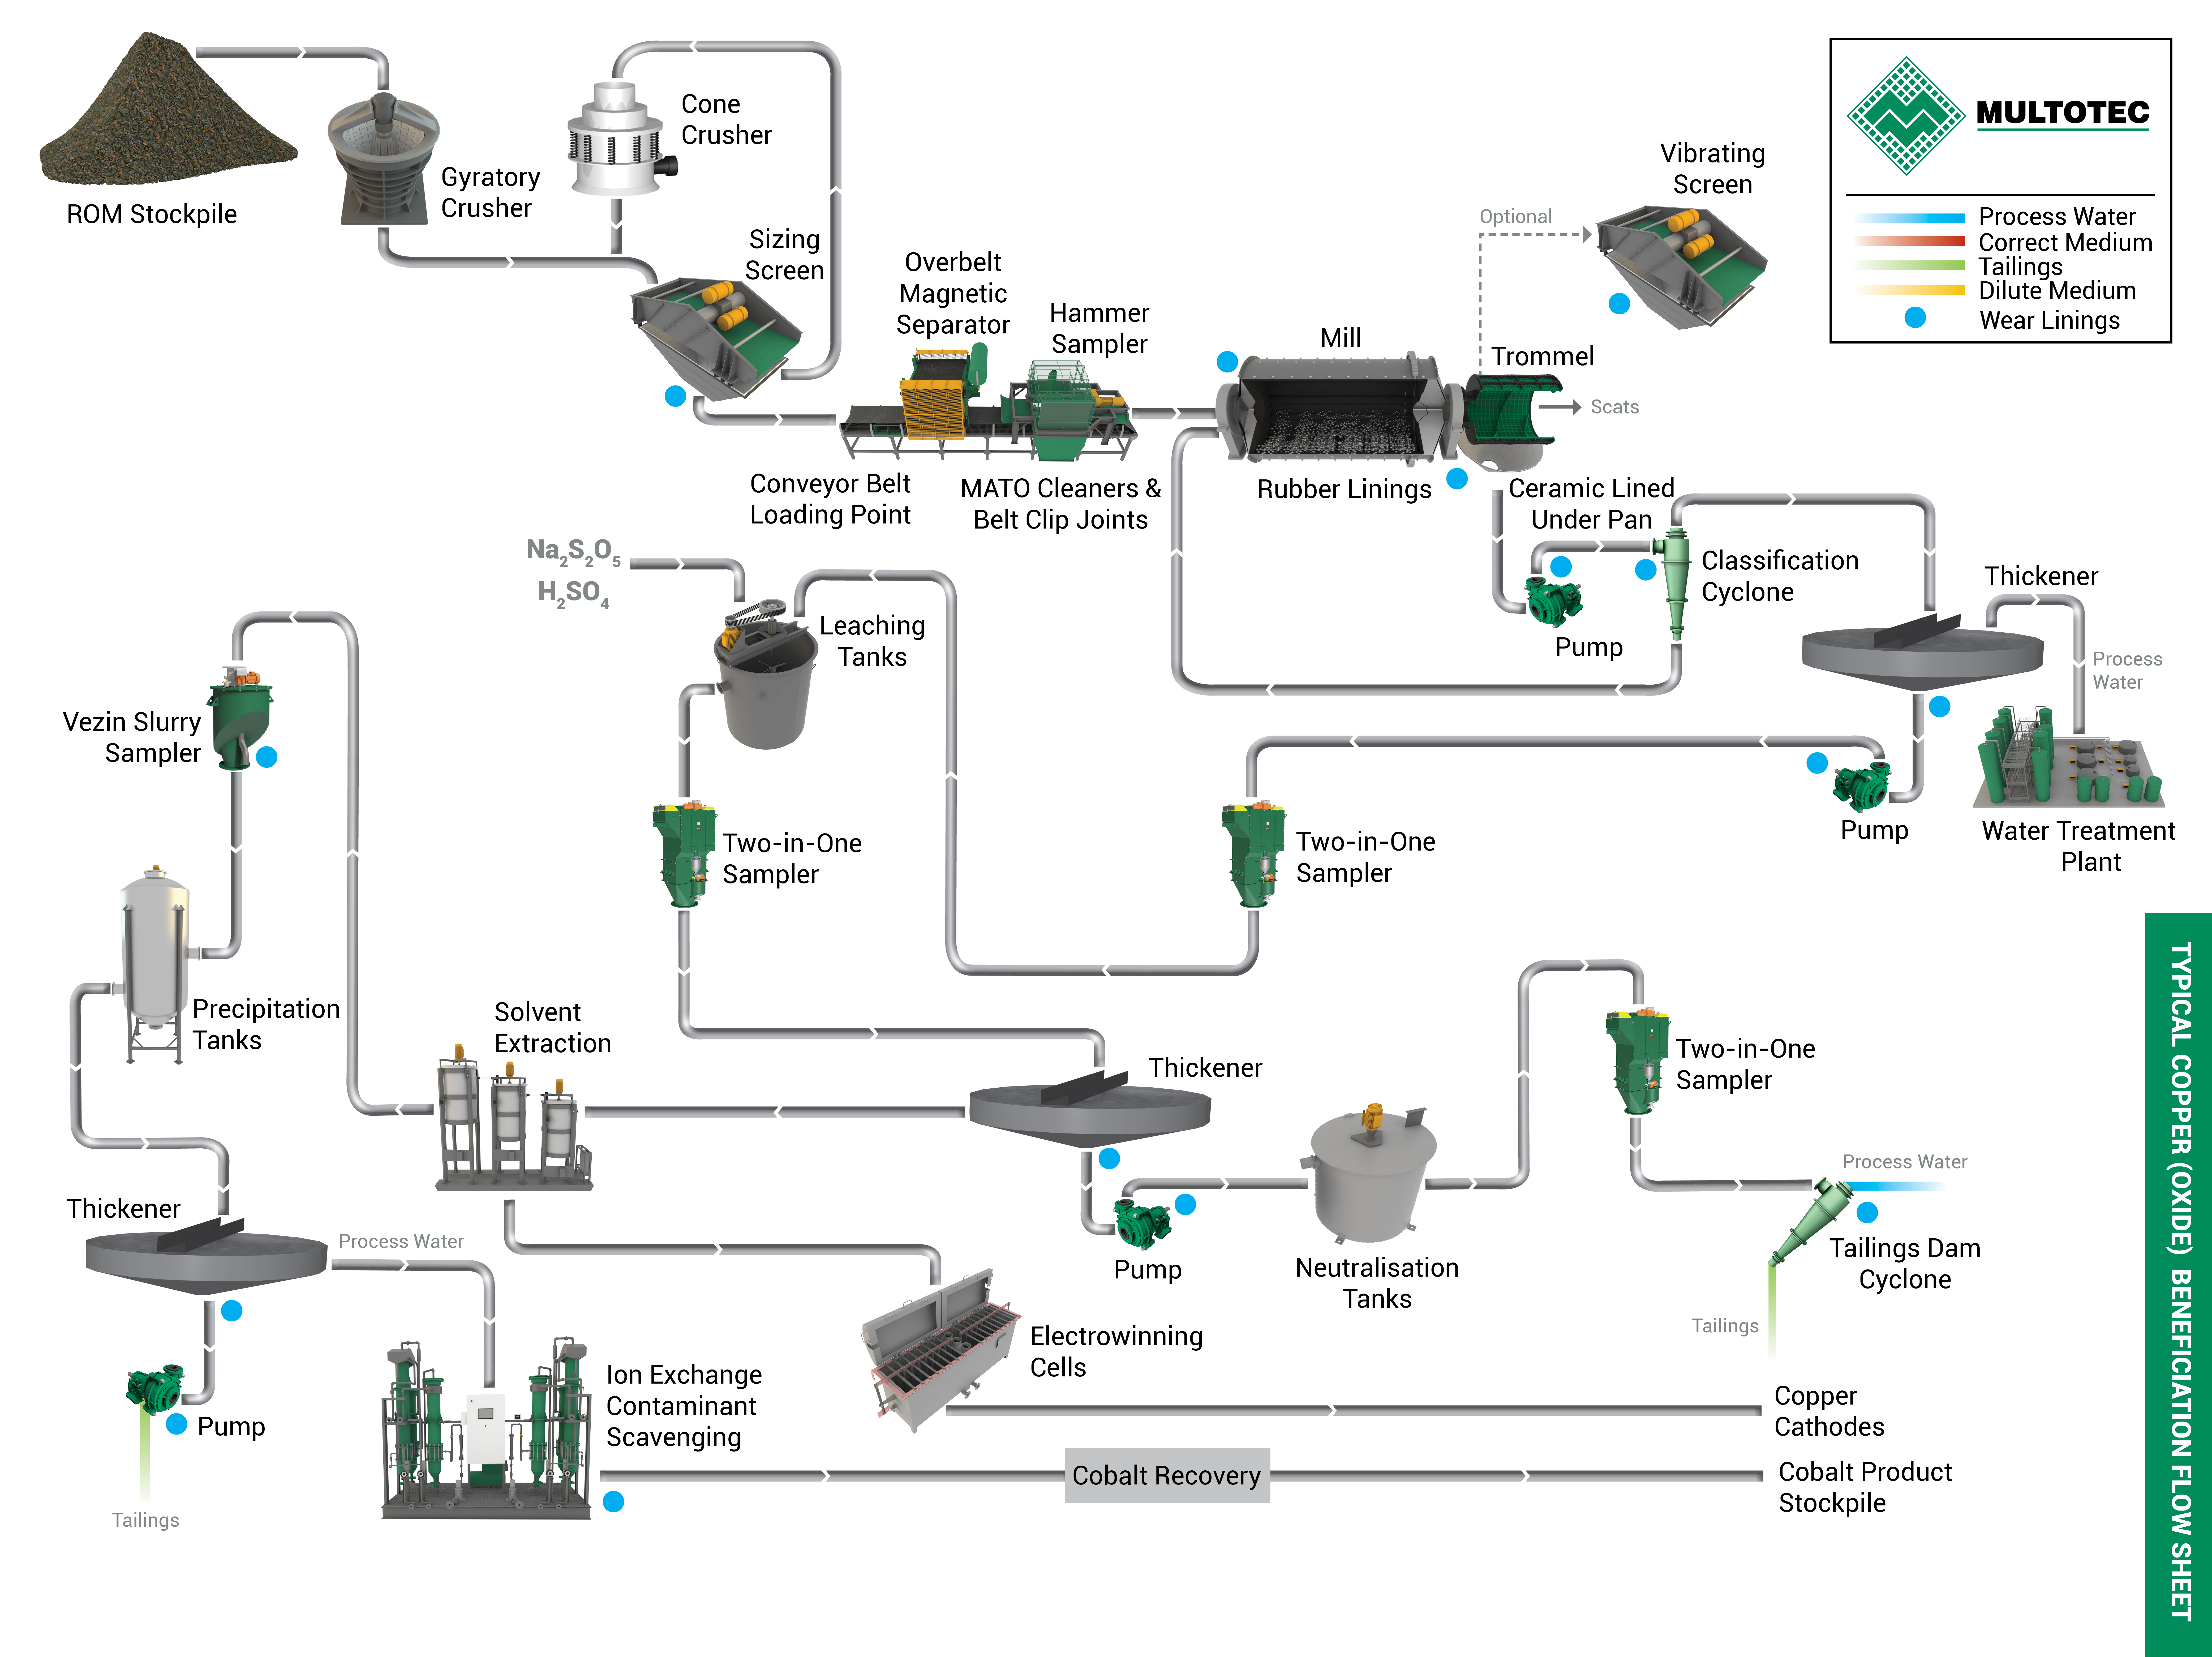 Copper oxide processing steps from Multotec.